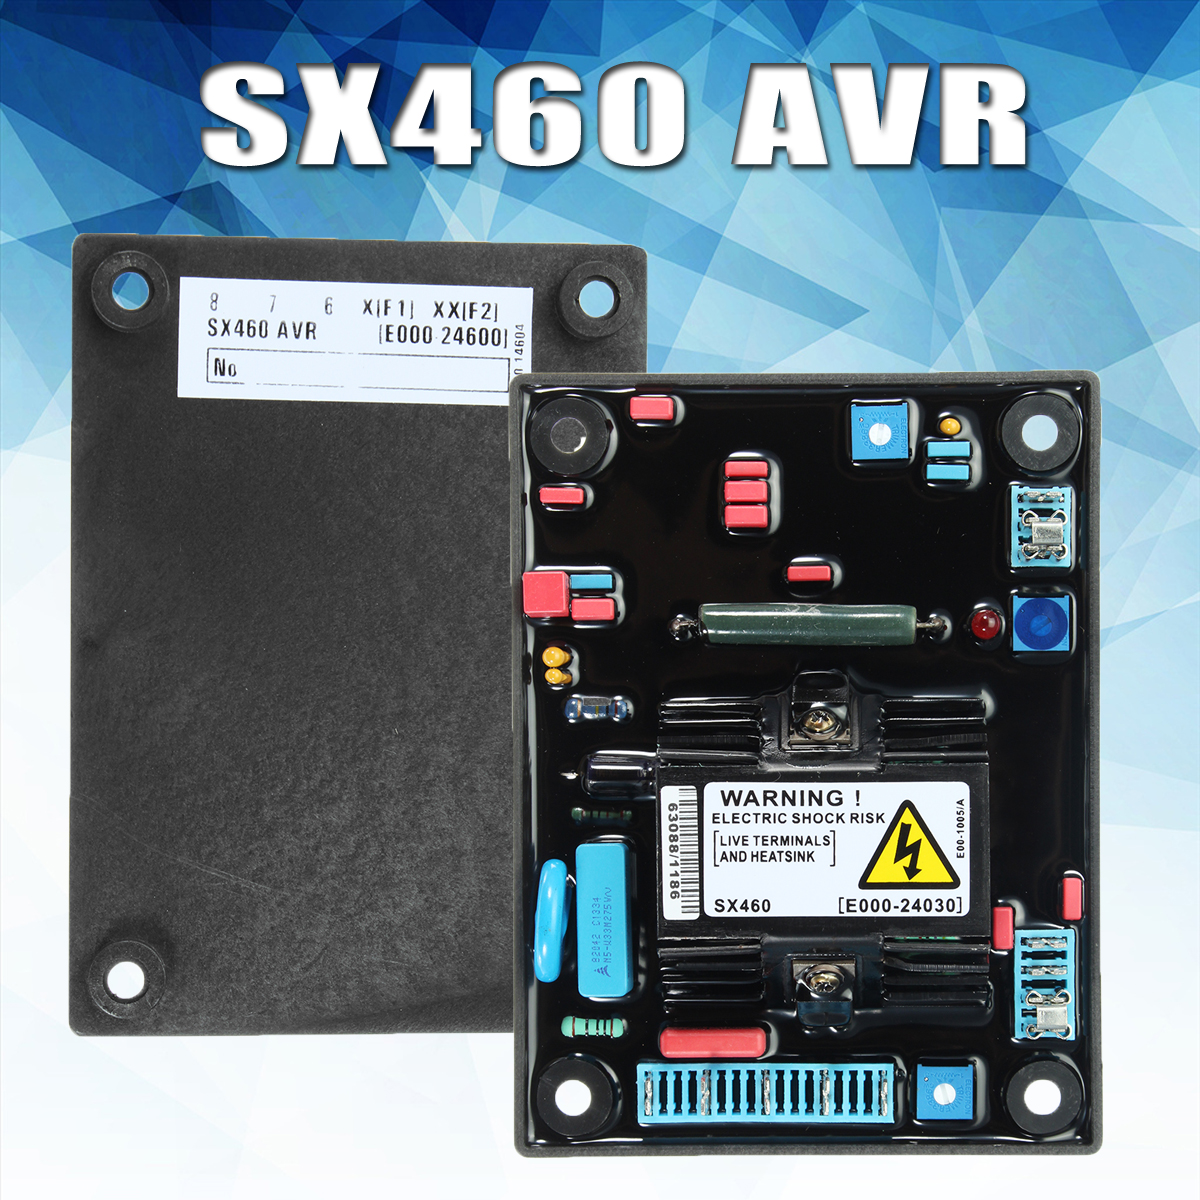 Red rubber SX460 AVR Automatic Voltage Regulator For Stamford Diese l Generator red carton avr sx460 for generator free shipping